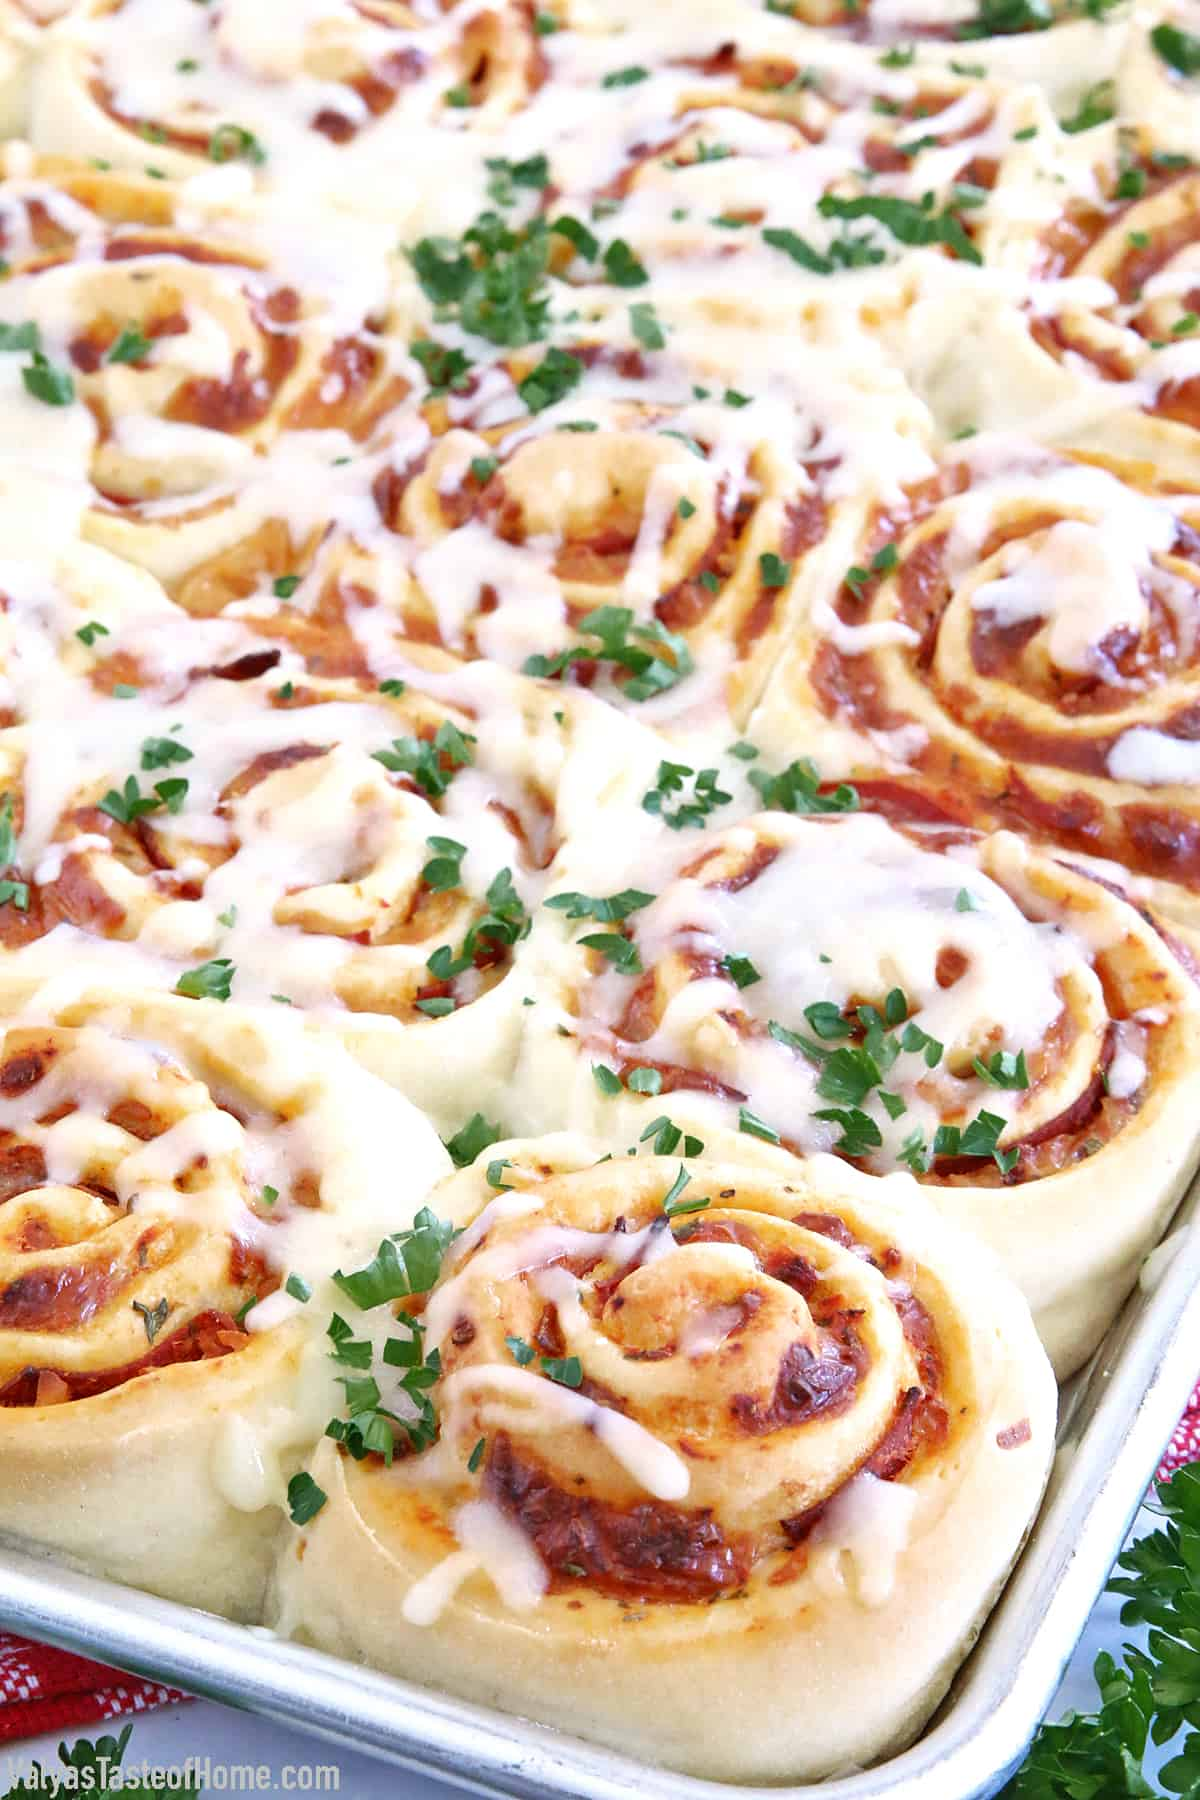 Move over, tiny pizza bites, because here come hearty Easy Pepperoni Pizza Rolls! This recipe is made with my popular super soft and chewy Homemade Pizza Dough, Homemade Pizza Sauce, loads of scrumptious turkey pepperoni, and mozzarella cheese. All rolled up into one amazingly tasty treat that is always a big hit at my house.